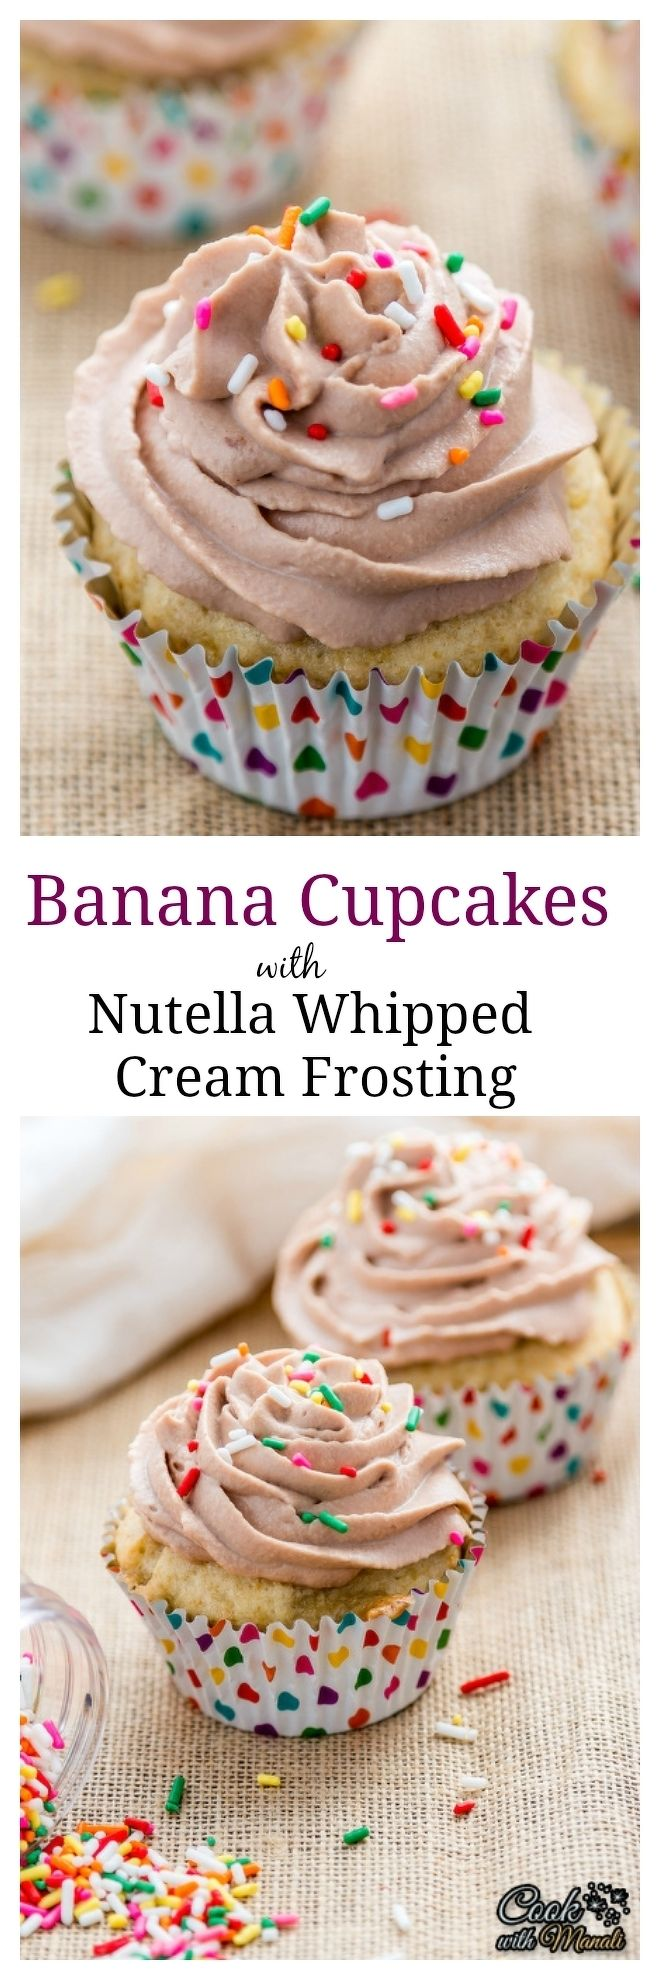 Banana-Cupcakes-With-Nutella-Whipped-Cream-Frosting Collage-nocwm